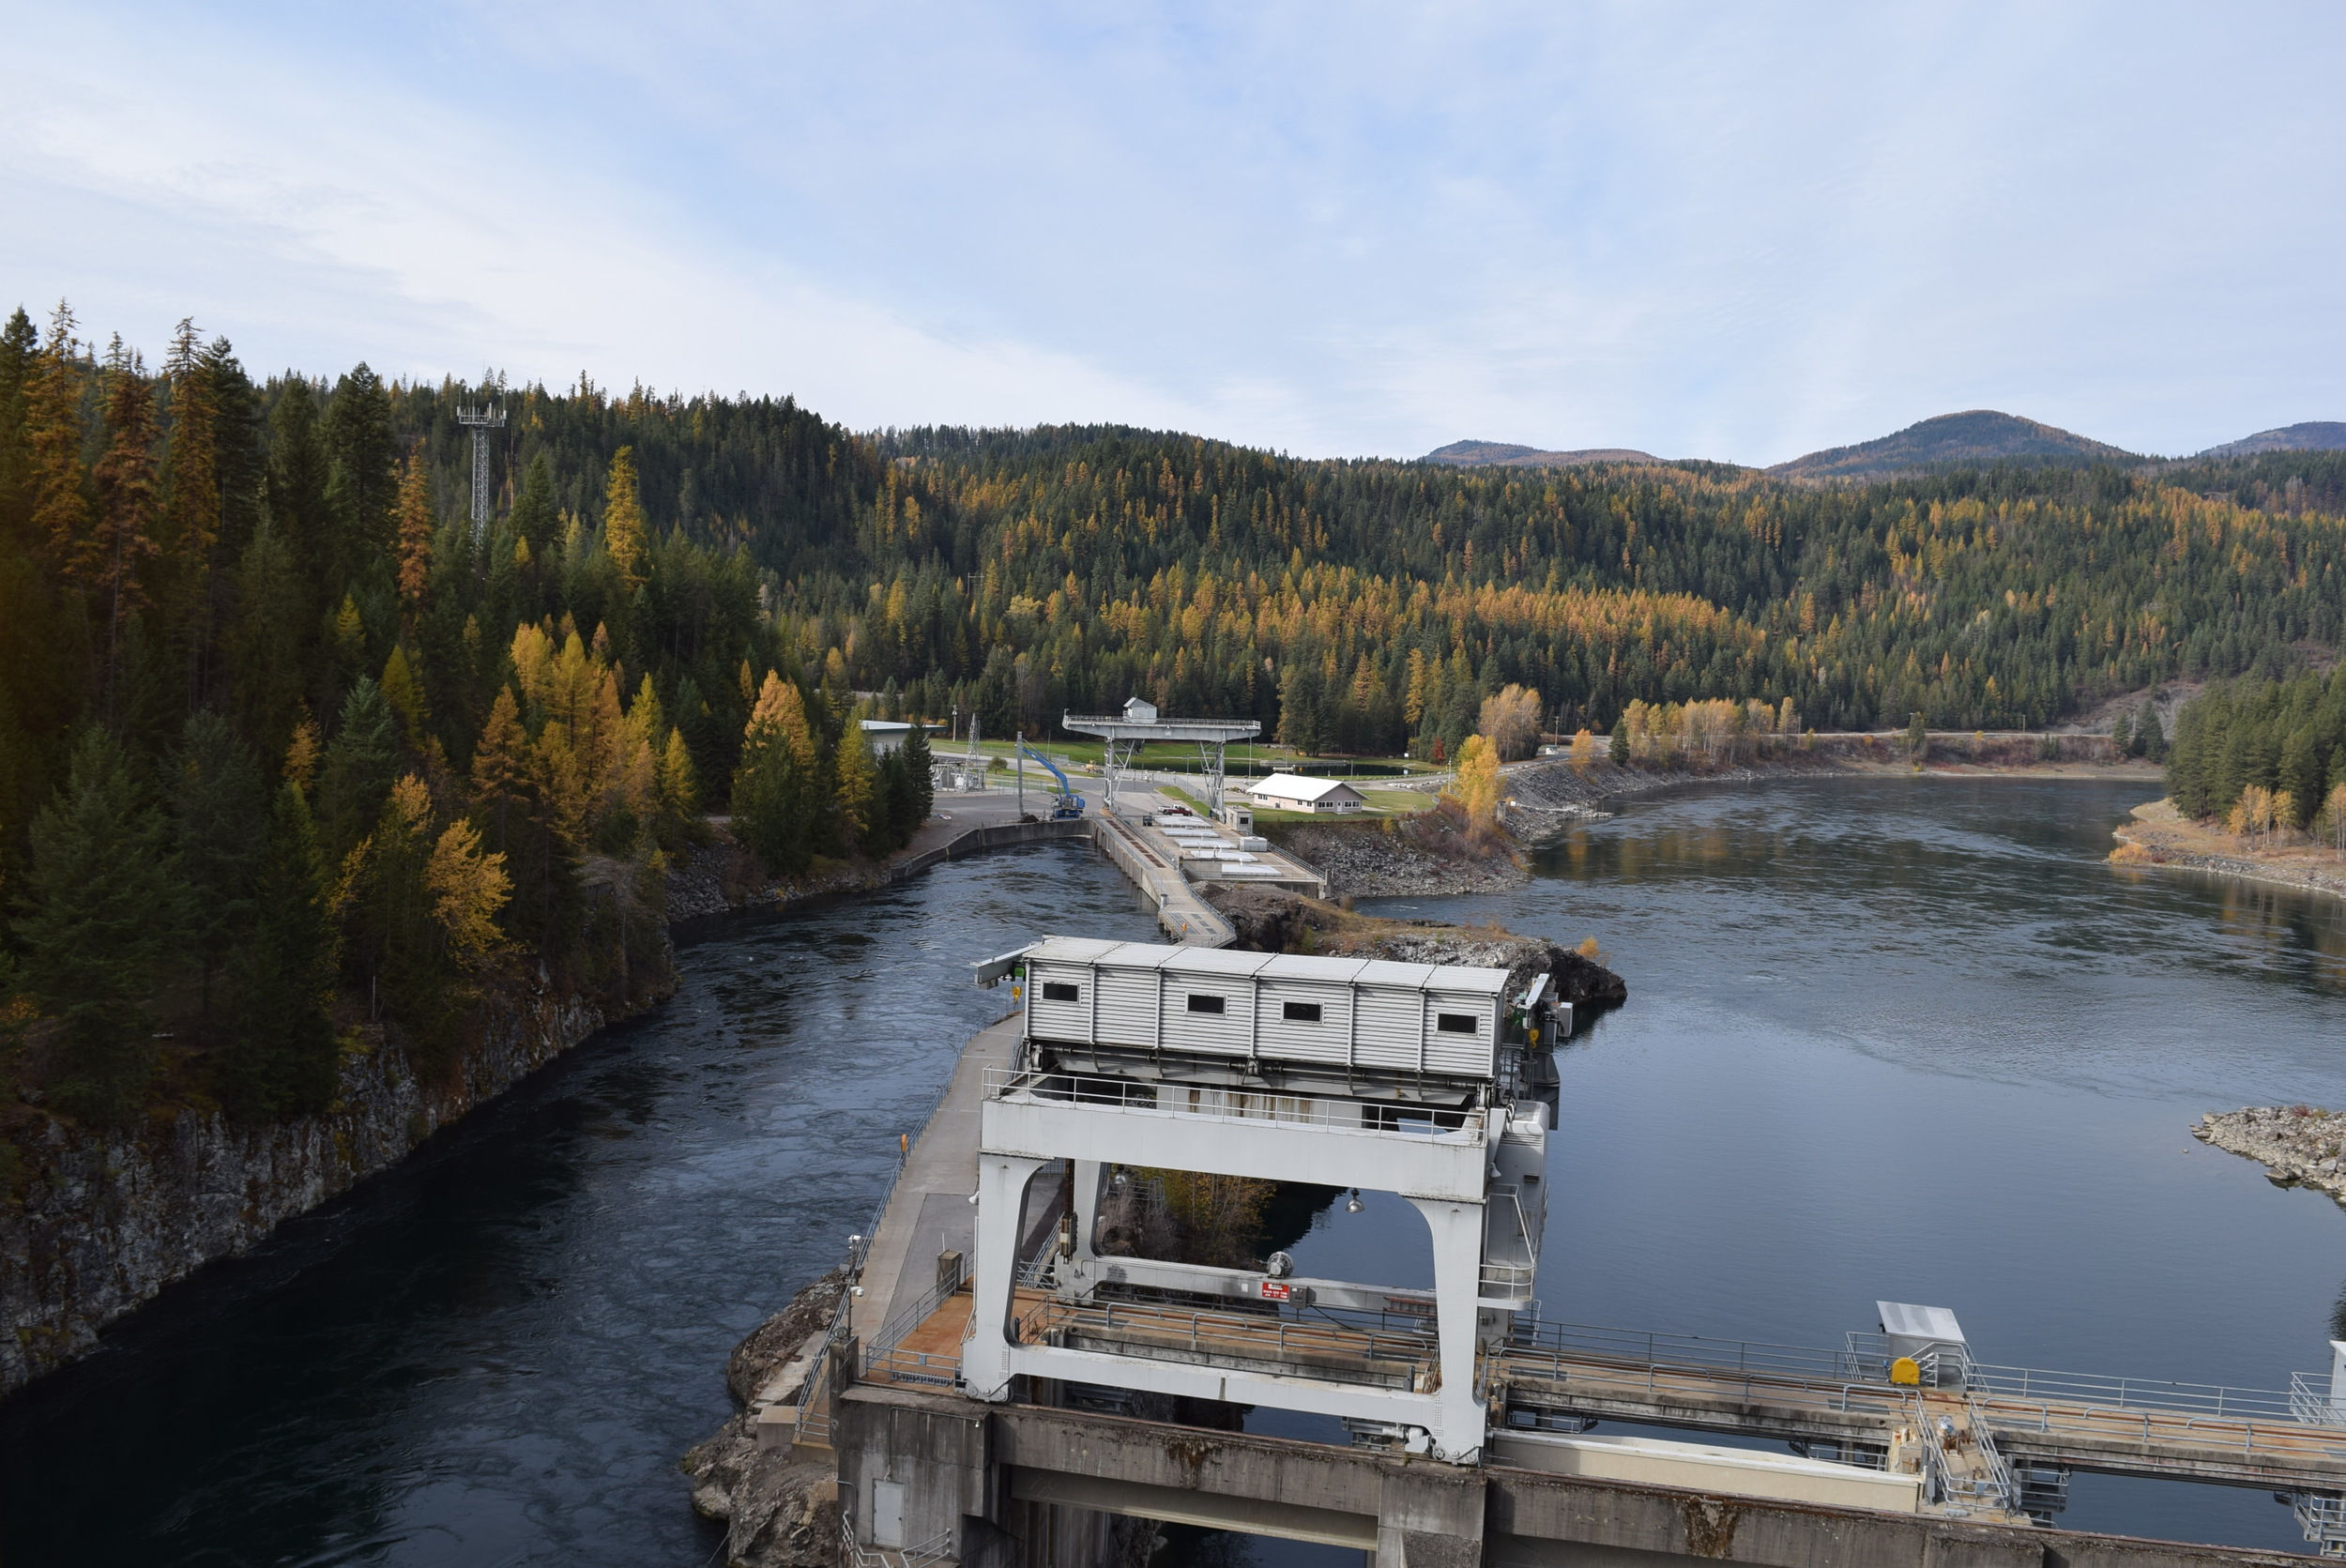 The Box Canyon Dam on the Pend Oreille River.